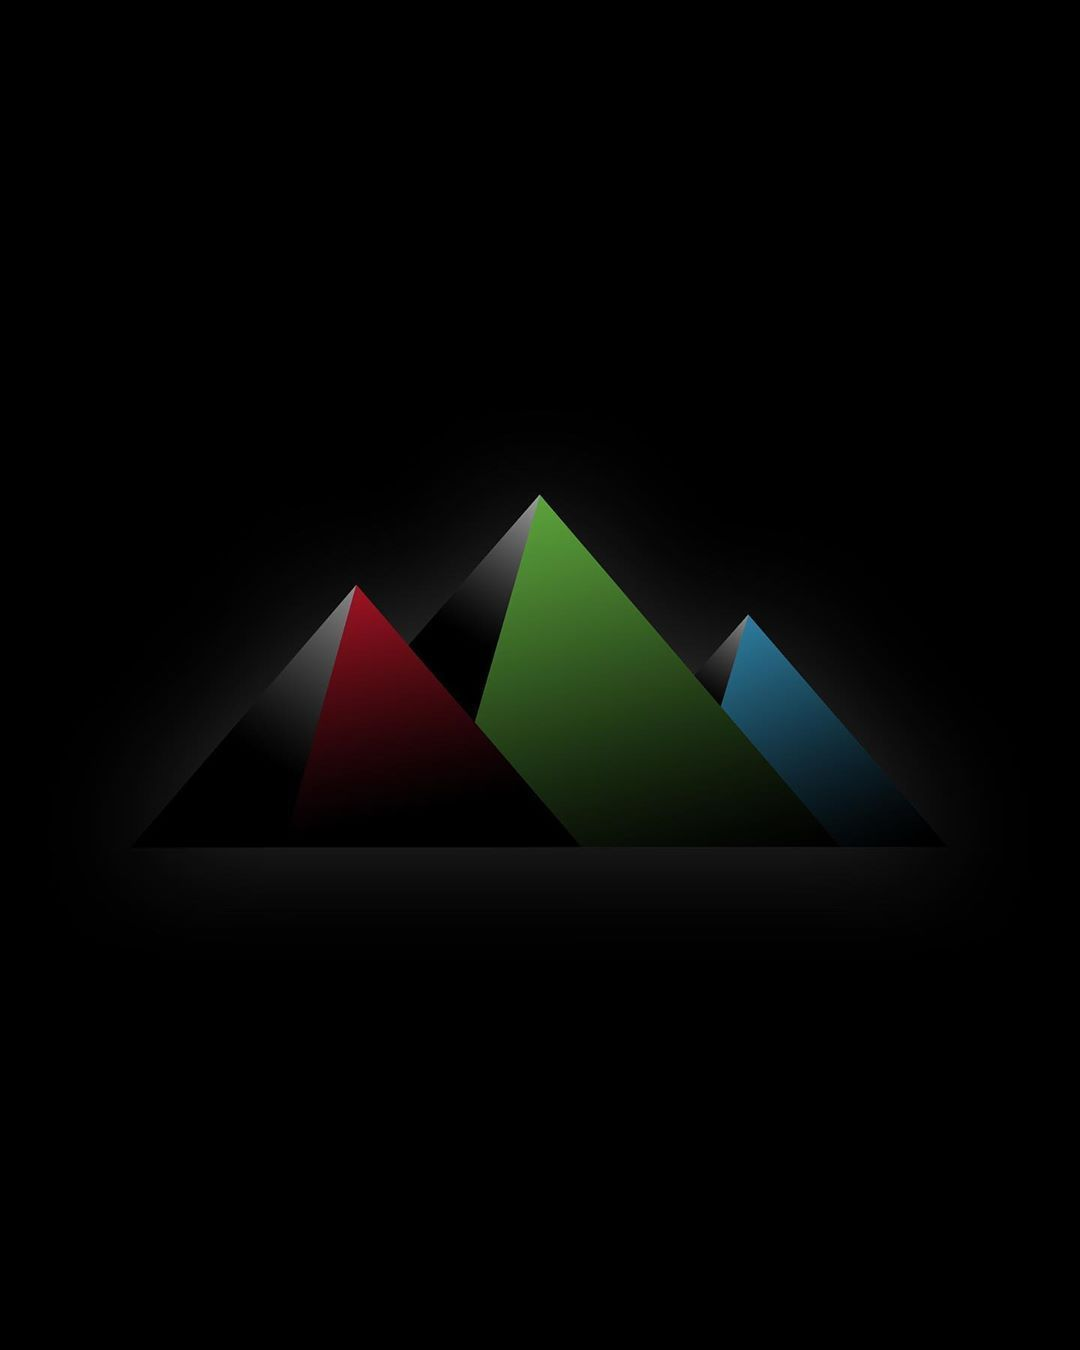 Download Link In Bio Abstract Wallpaper Phonewallpaper Triangles Rgb Red Green Blue Black Mobile Wallpaper Wallpaper Phone Wallpaper